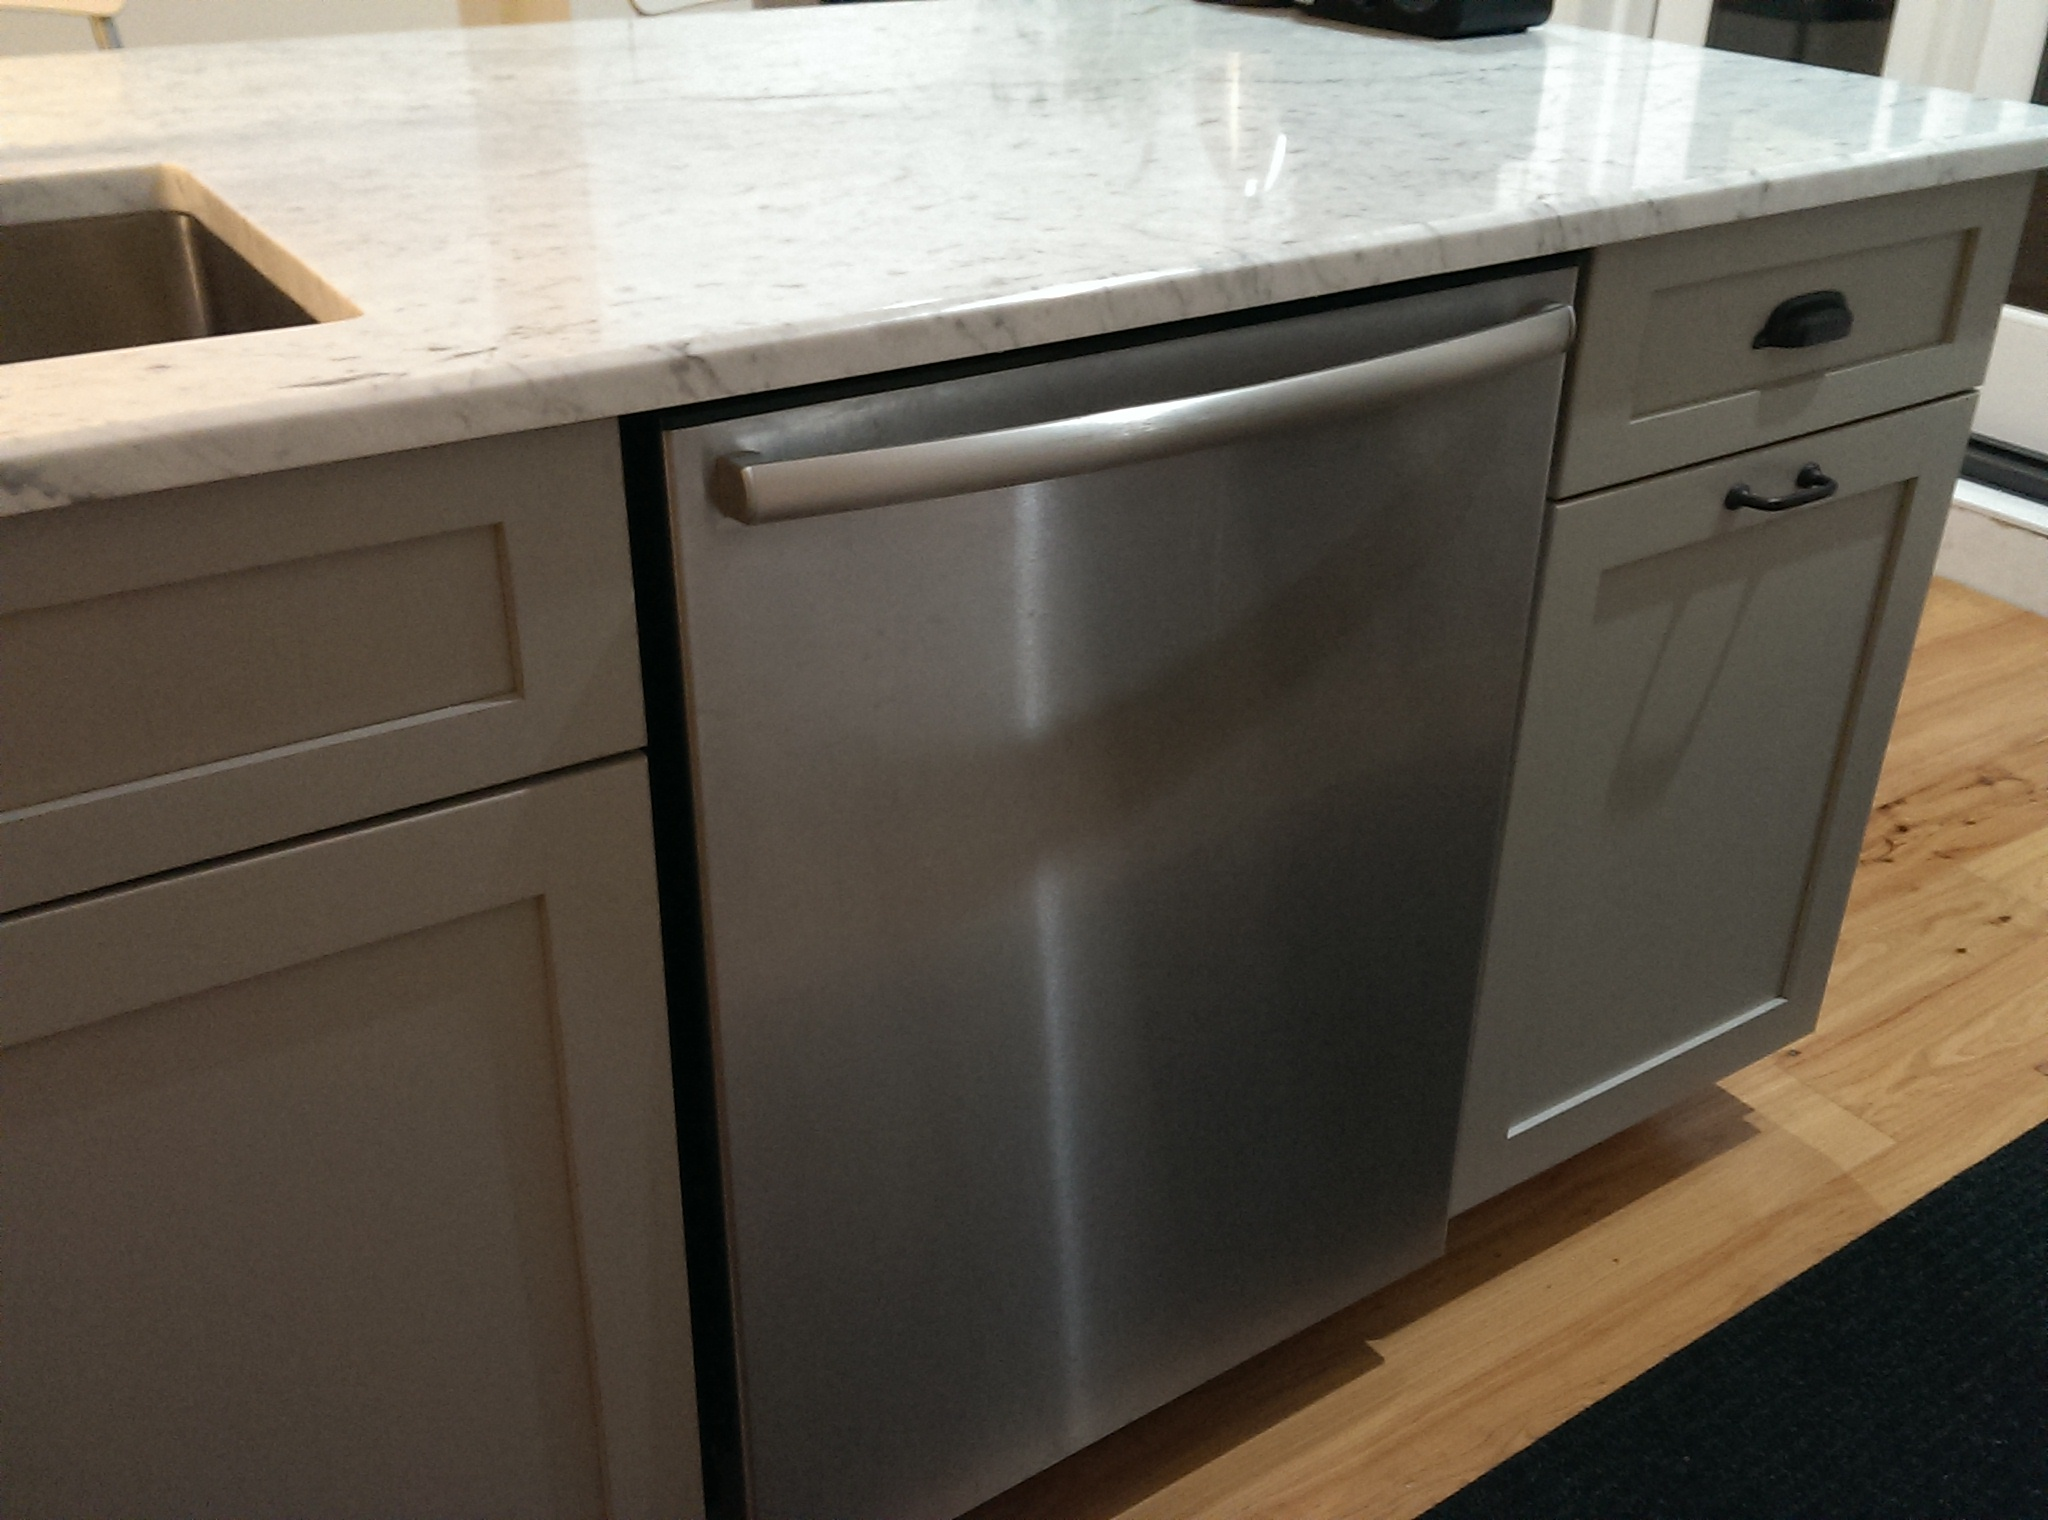 craigslist rss 65 off high end kitchen appliances brownstone